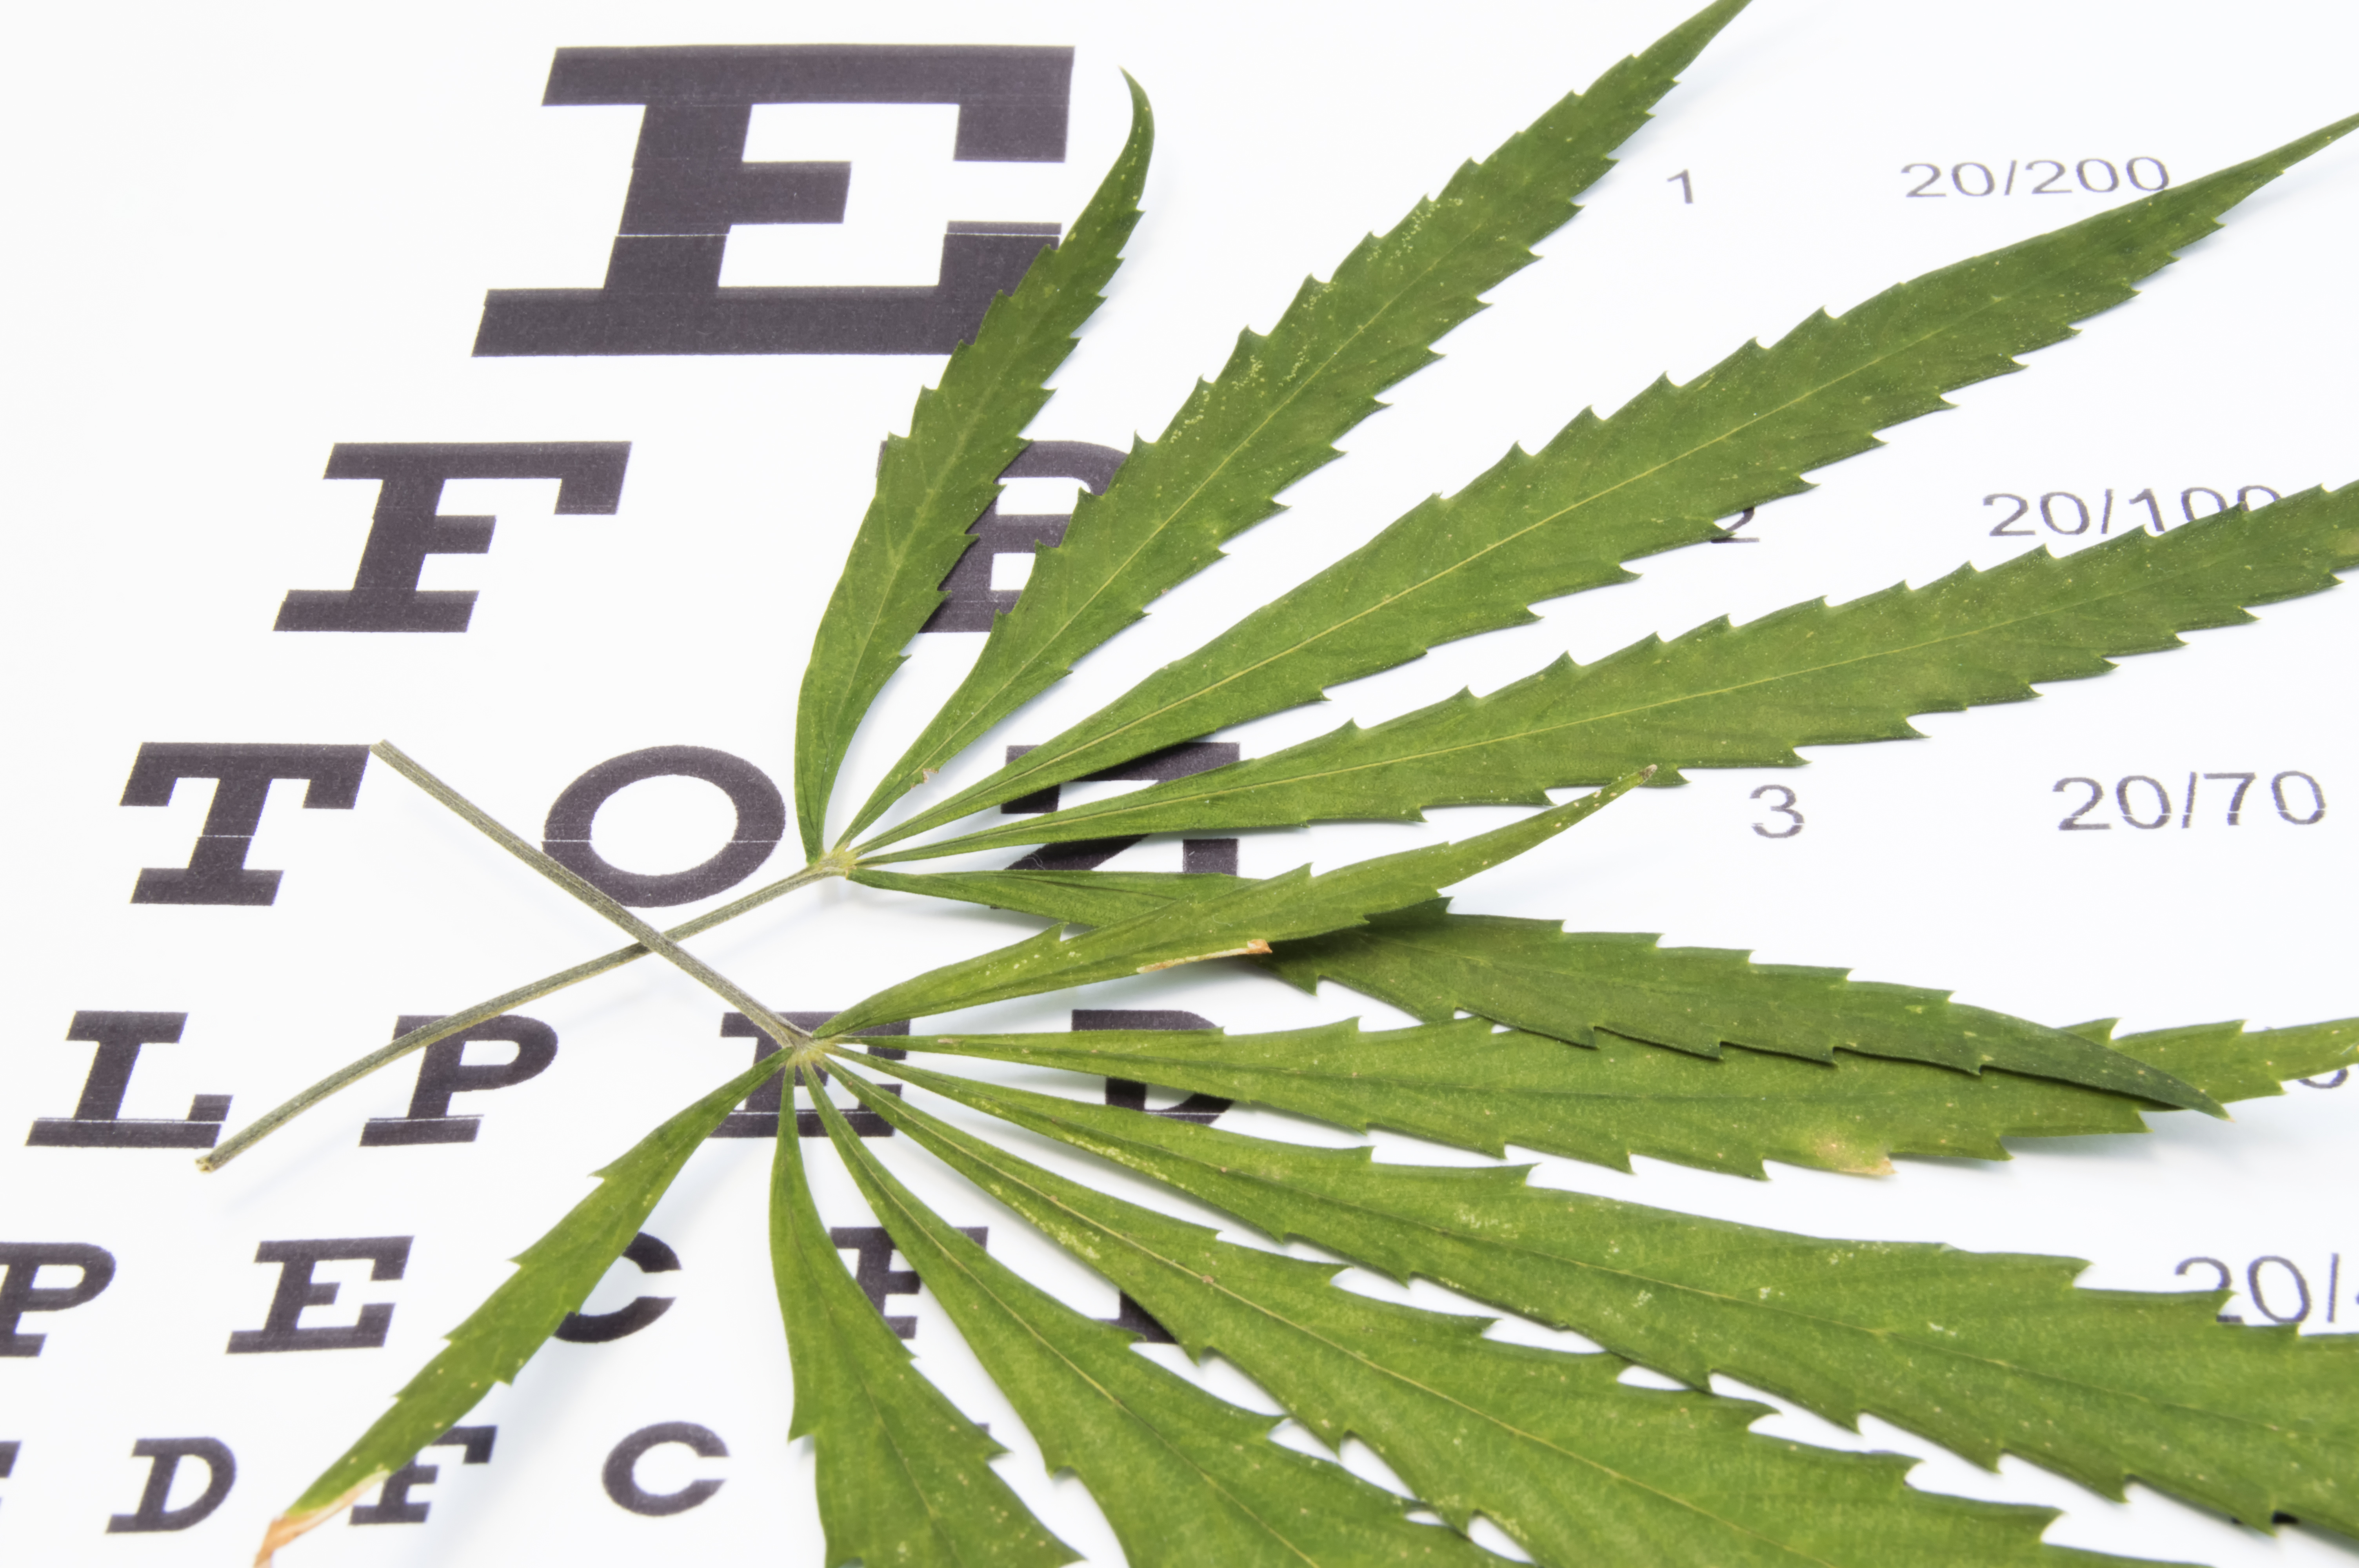 response to marijuana good or bad How does marijuana impact vision keep reading and learn a few of the ways that using marijuana can affect your eyes marijuana's impact on the body there are many known effects on the body when using marijuana some of these relate to the eyes while others impact other areas of the body.